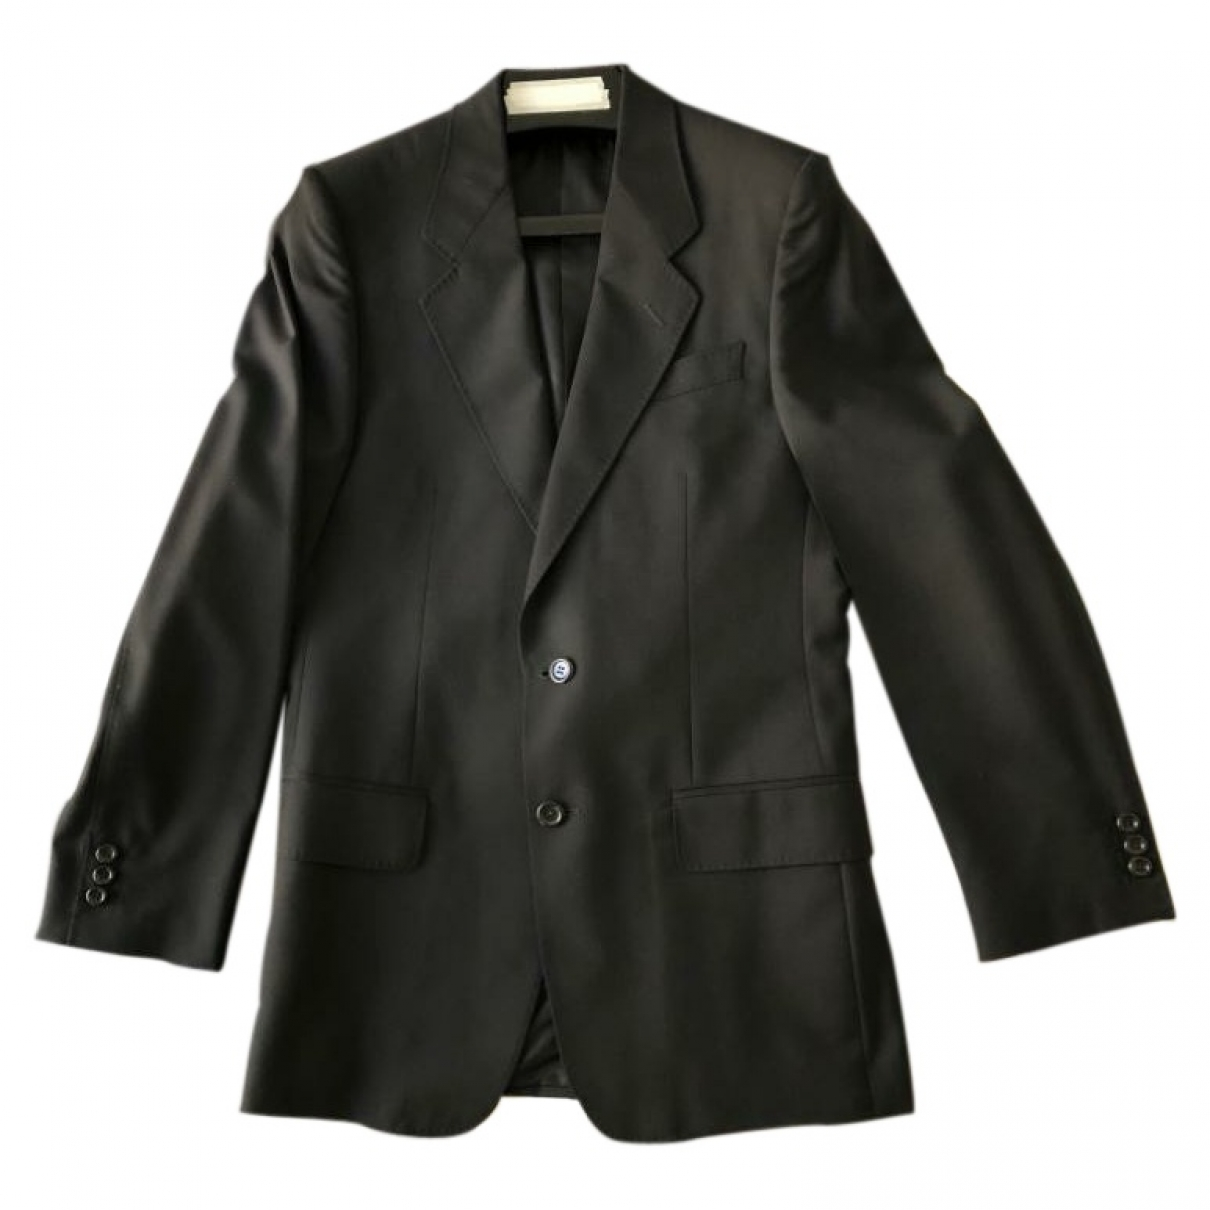 Yves Saint Laurent \N Jacke in  Schwarz Wolle